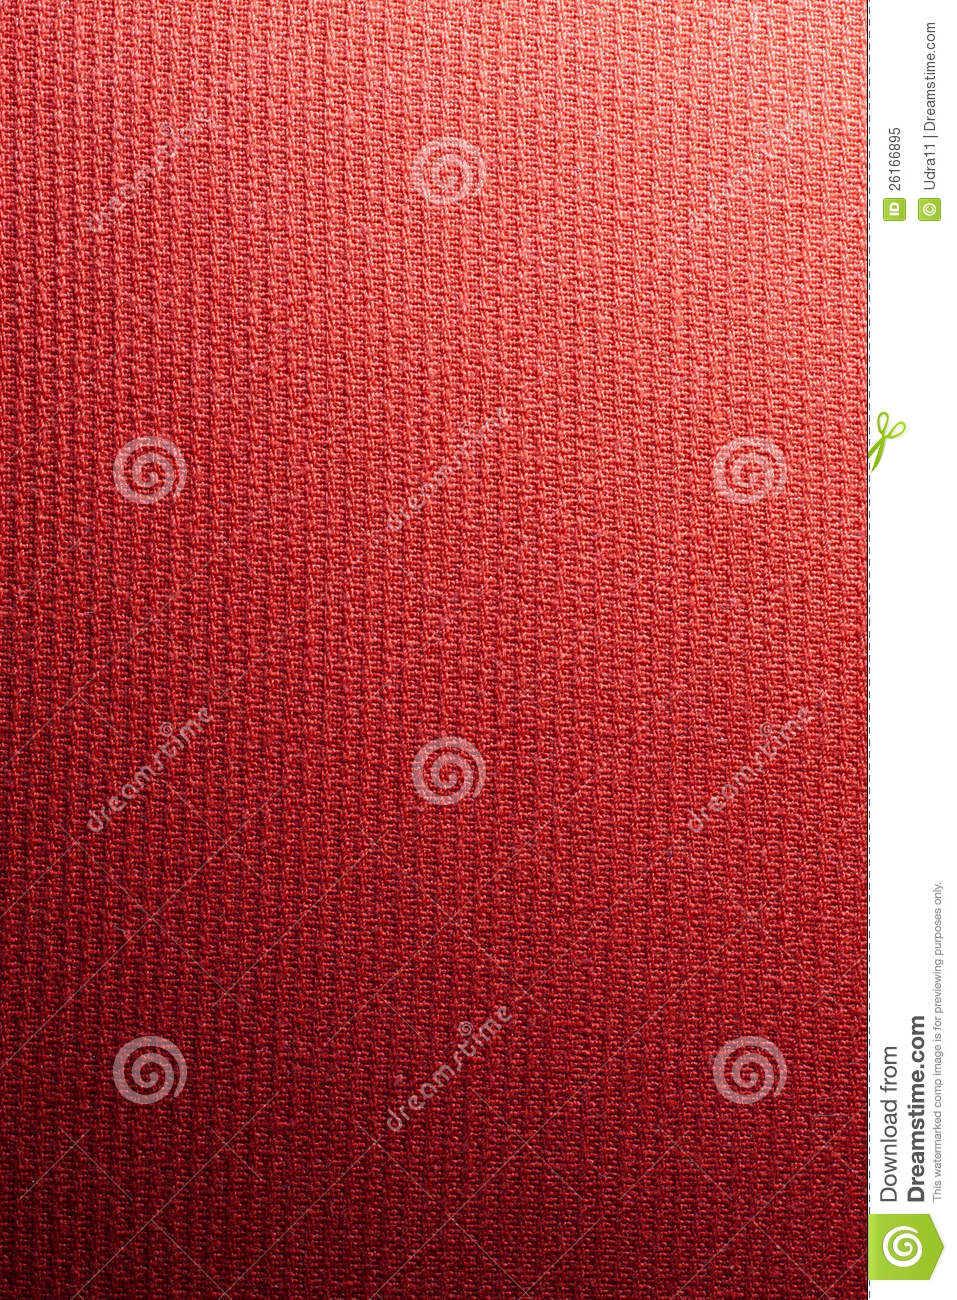 Red fabric cloth vintage canvas royalty free stock photo for Red space fabric